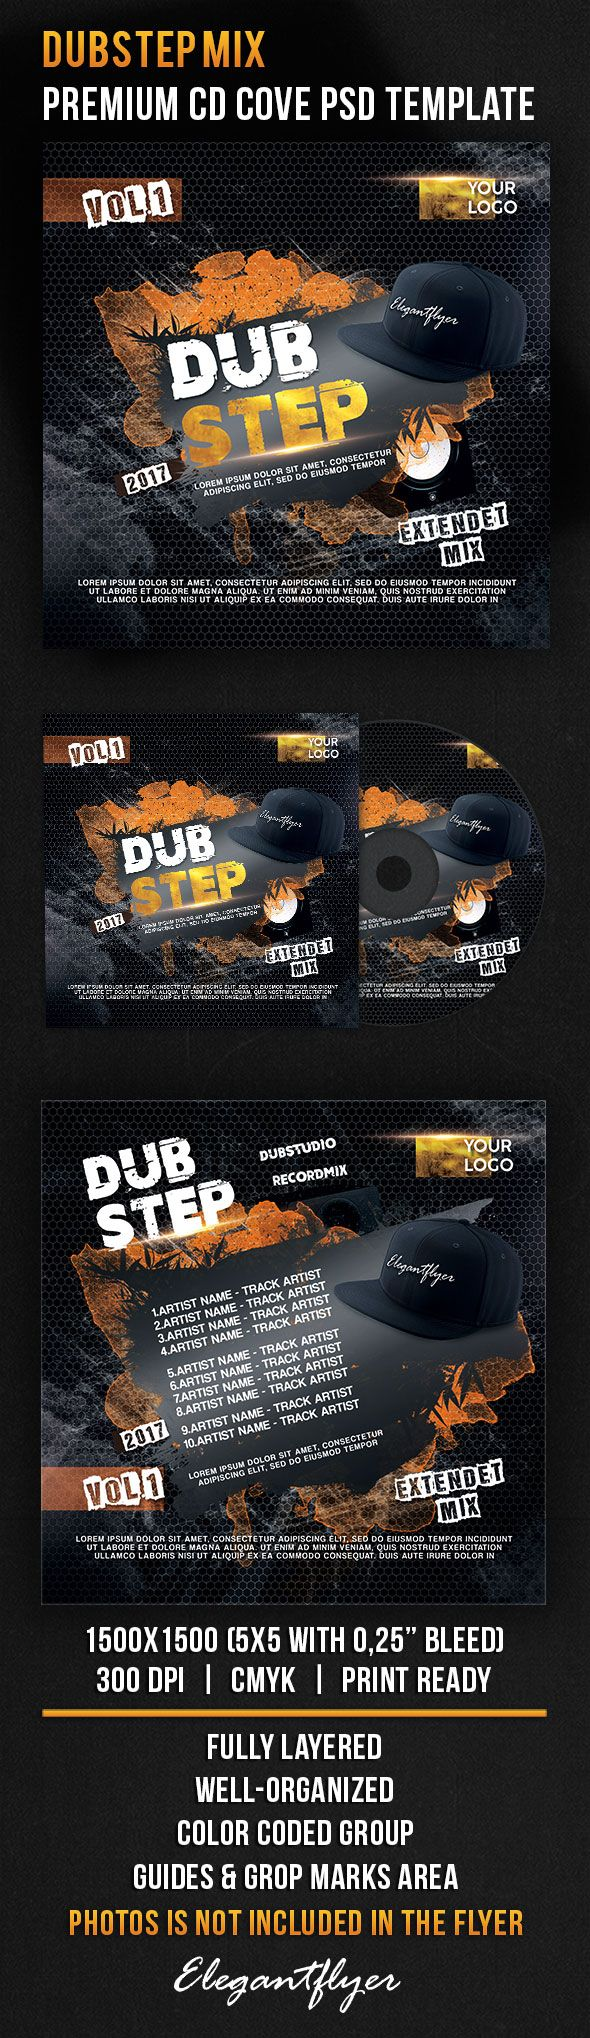 Dubstep Mix – Premium CD Cover PSD Template